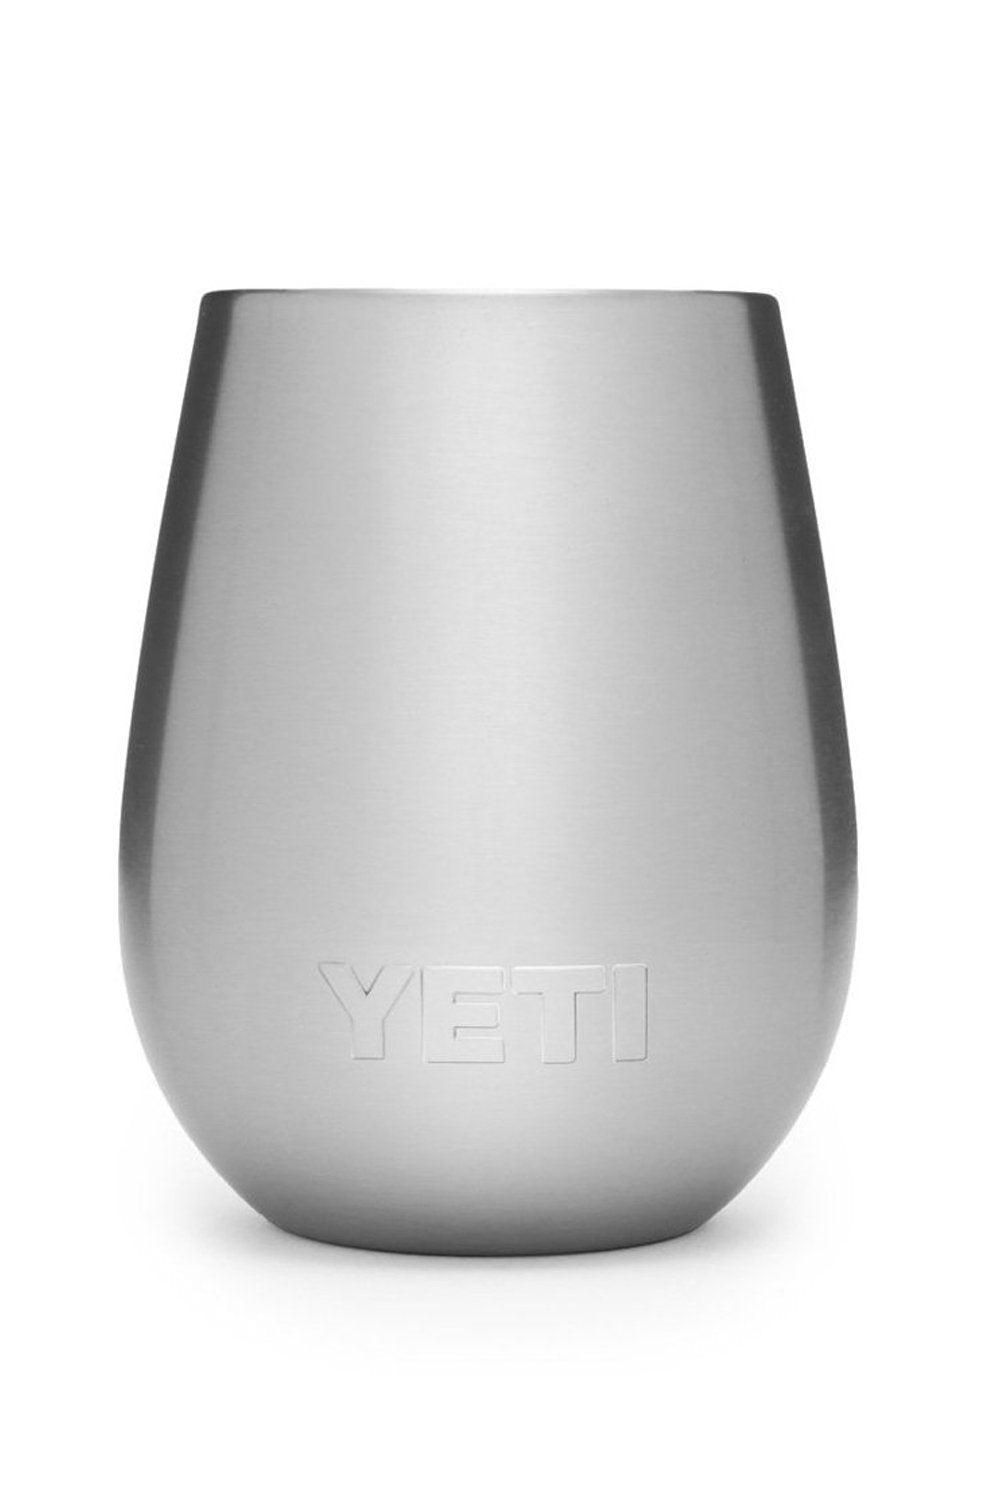 YETI Rambler 10 oz. (295 ml) Tumbler Wine Glass